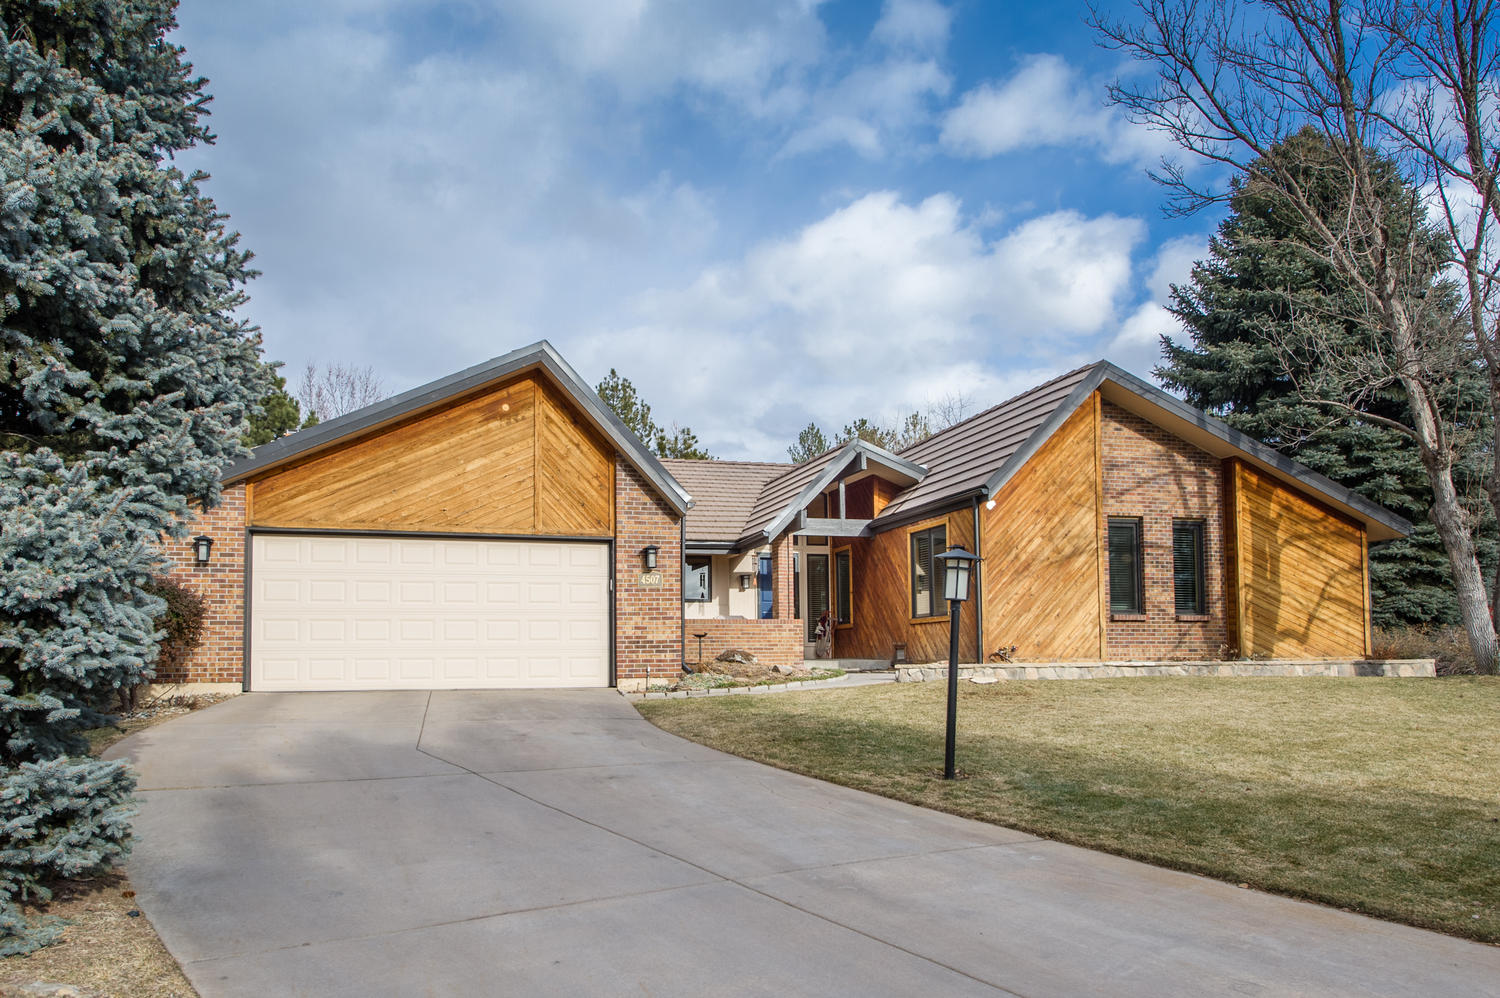 4507 E Links Pkwy, Centennial, CO 80122